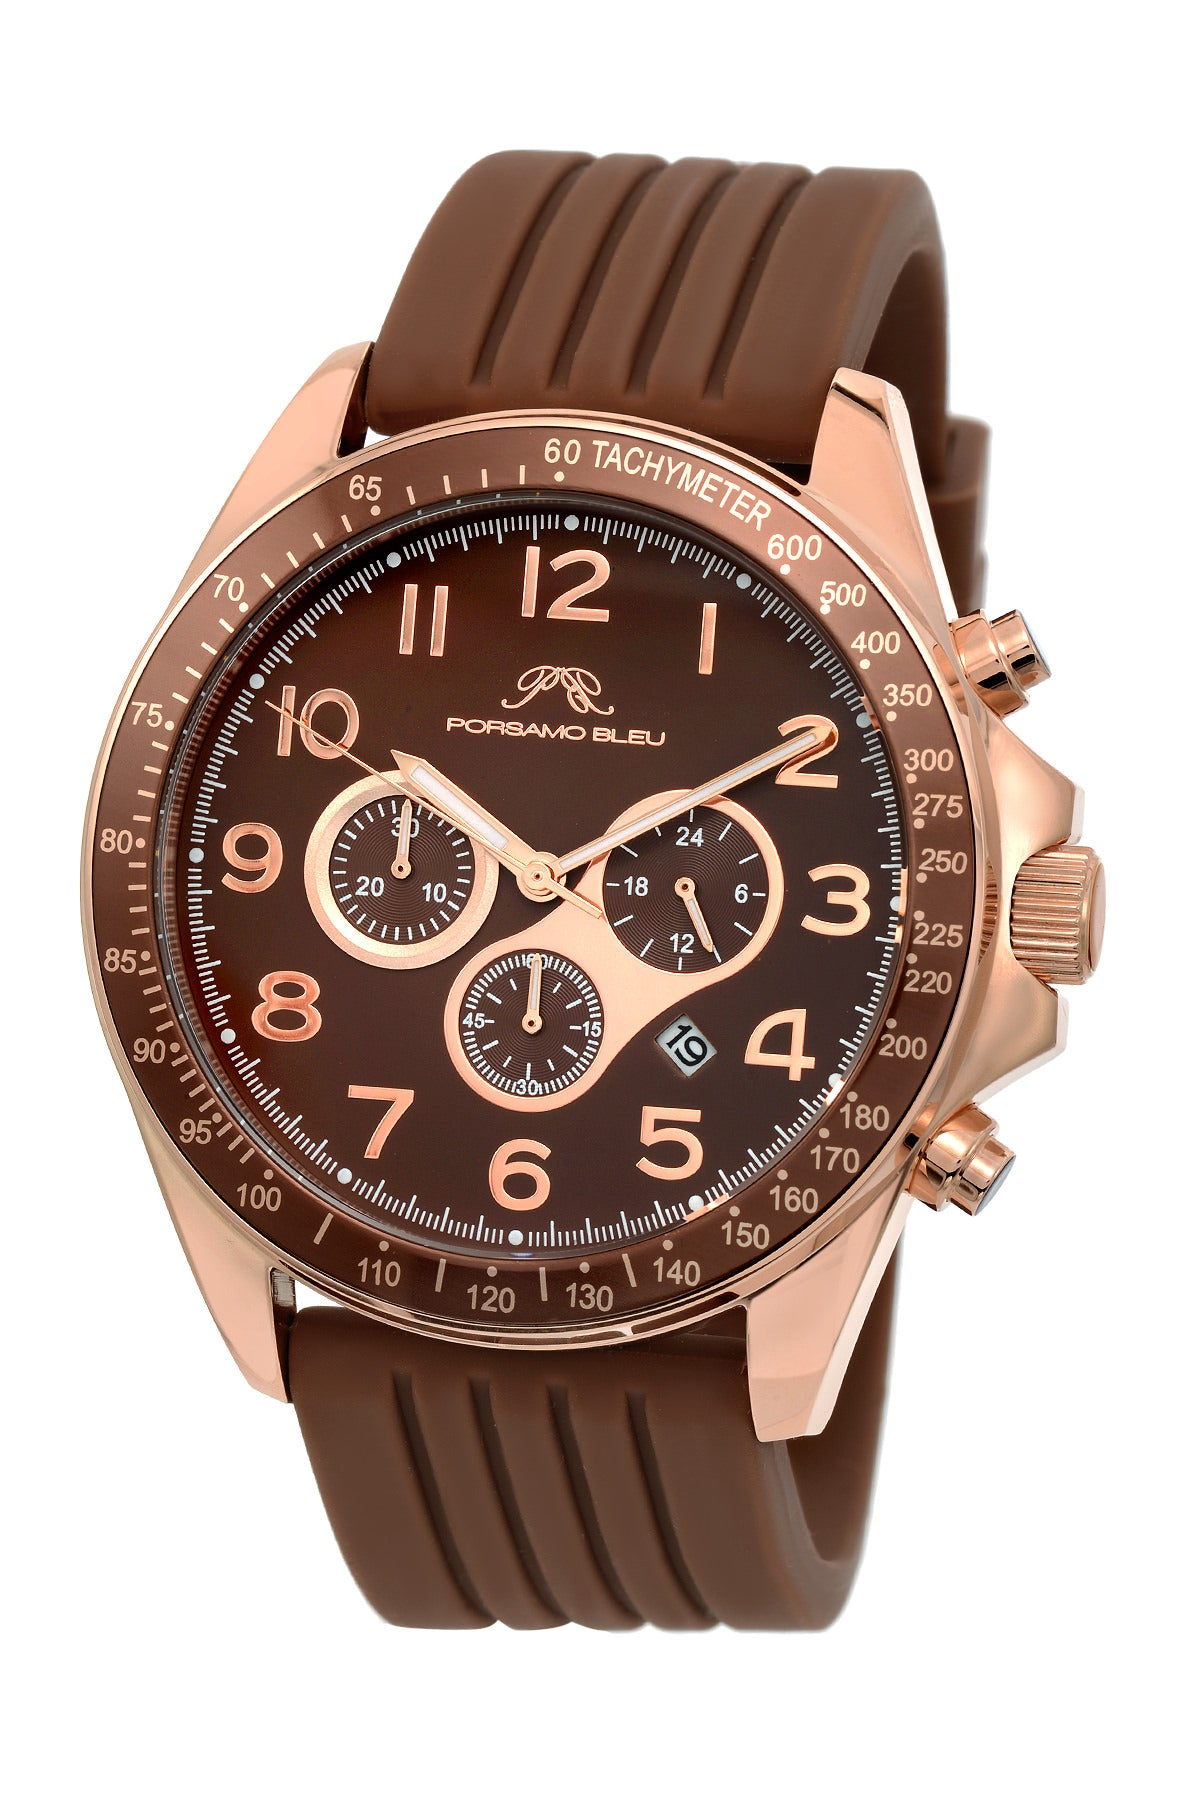 Porsamo Bleu Wolfgang luxury  chronograph men's watch, silicone strap, rose, brown 571CWOR